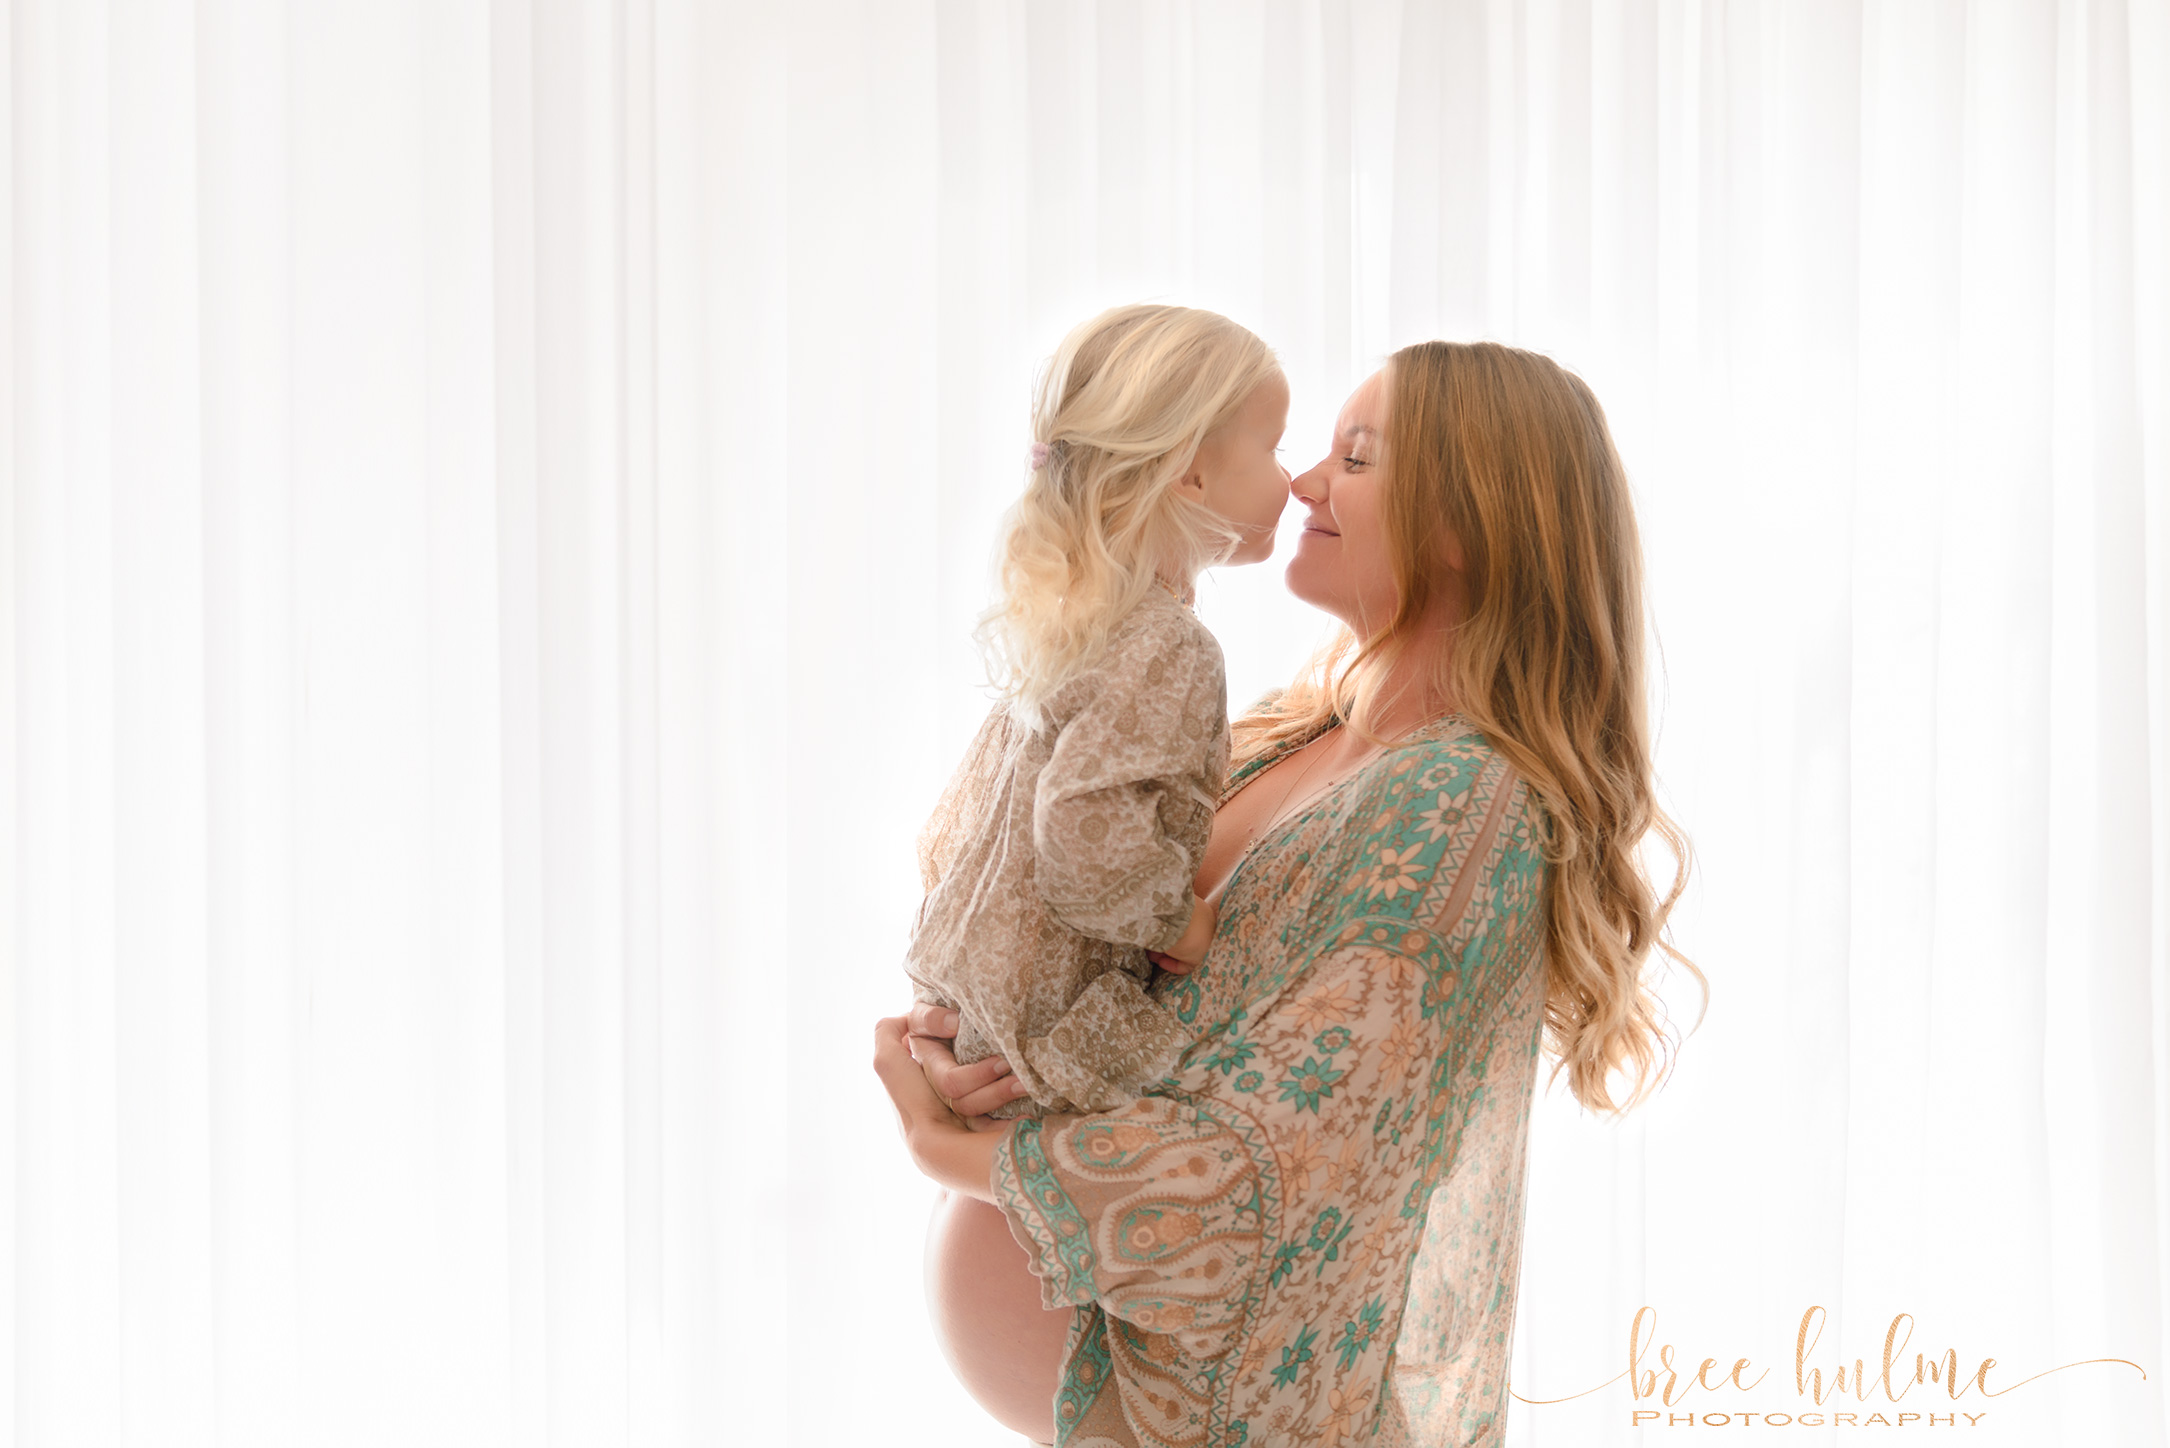 Bree Hulme Photography maternity photographer Sydney Family Photographer Sydney baby Photographer Sydney northern Beaches North Shore